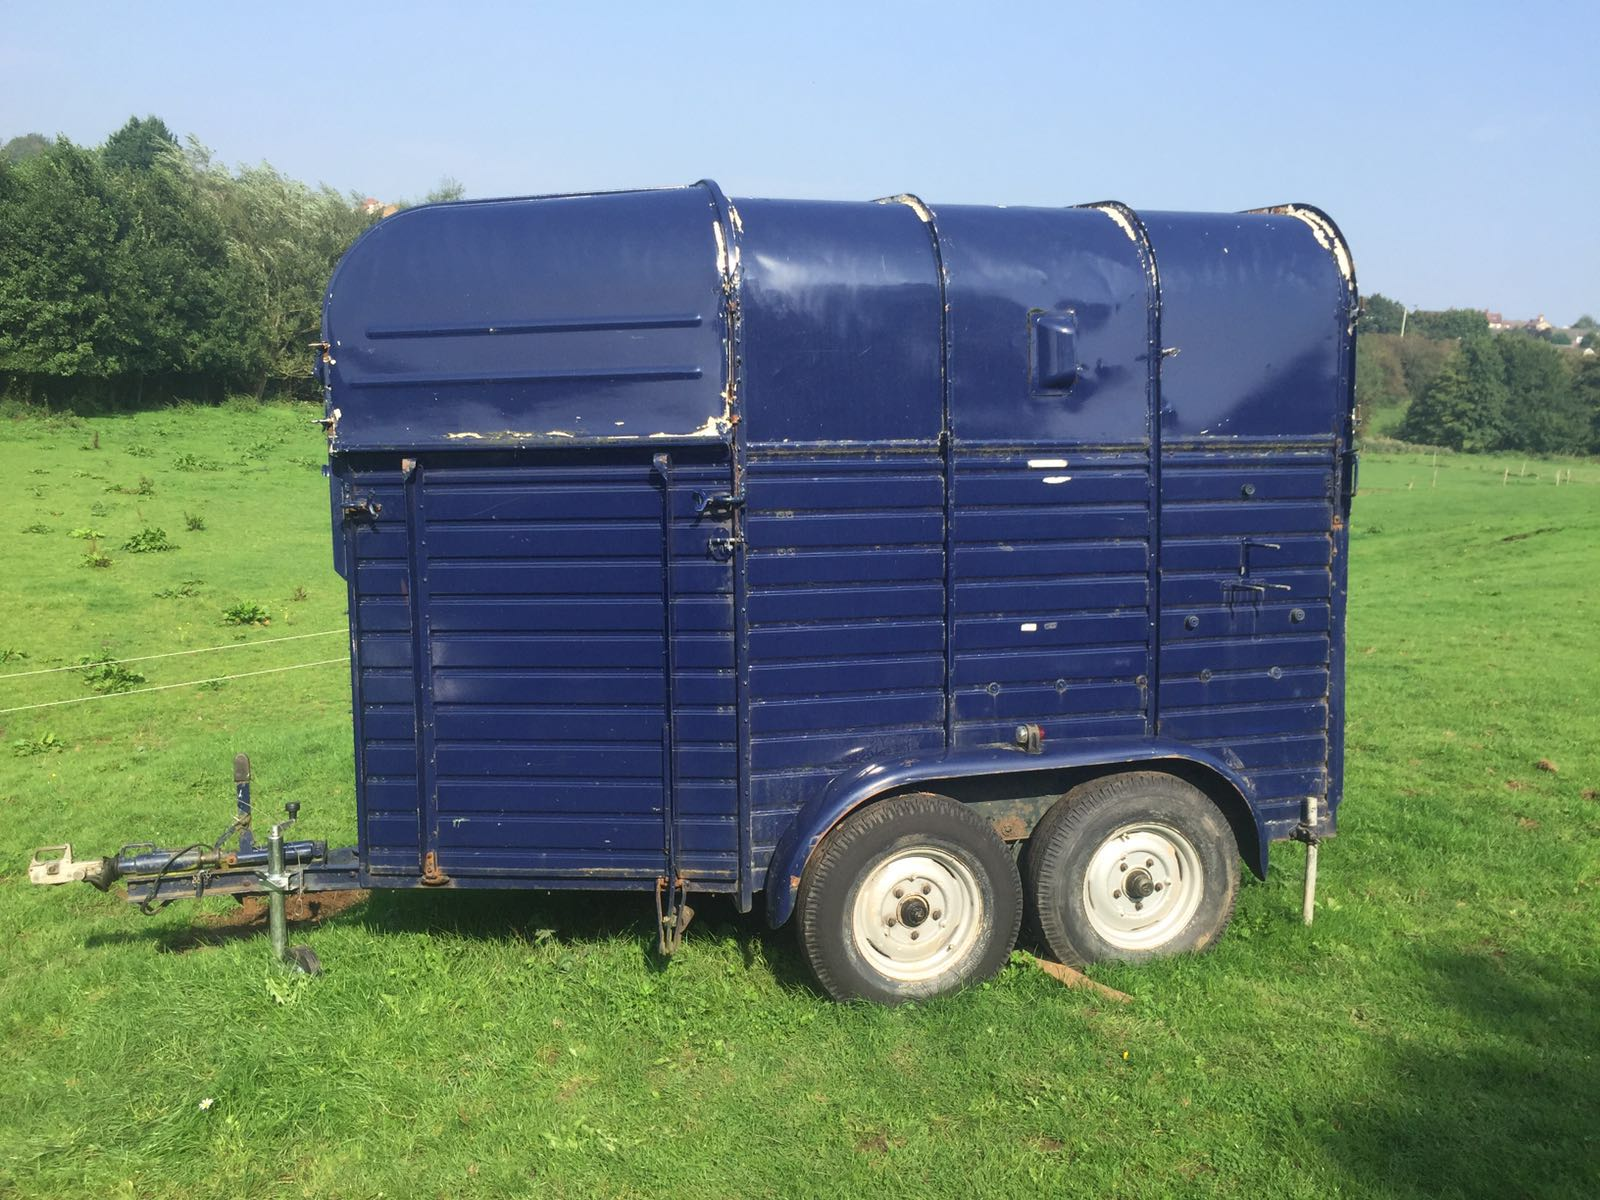 The horsebox was in a sorry state before the team got to work